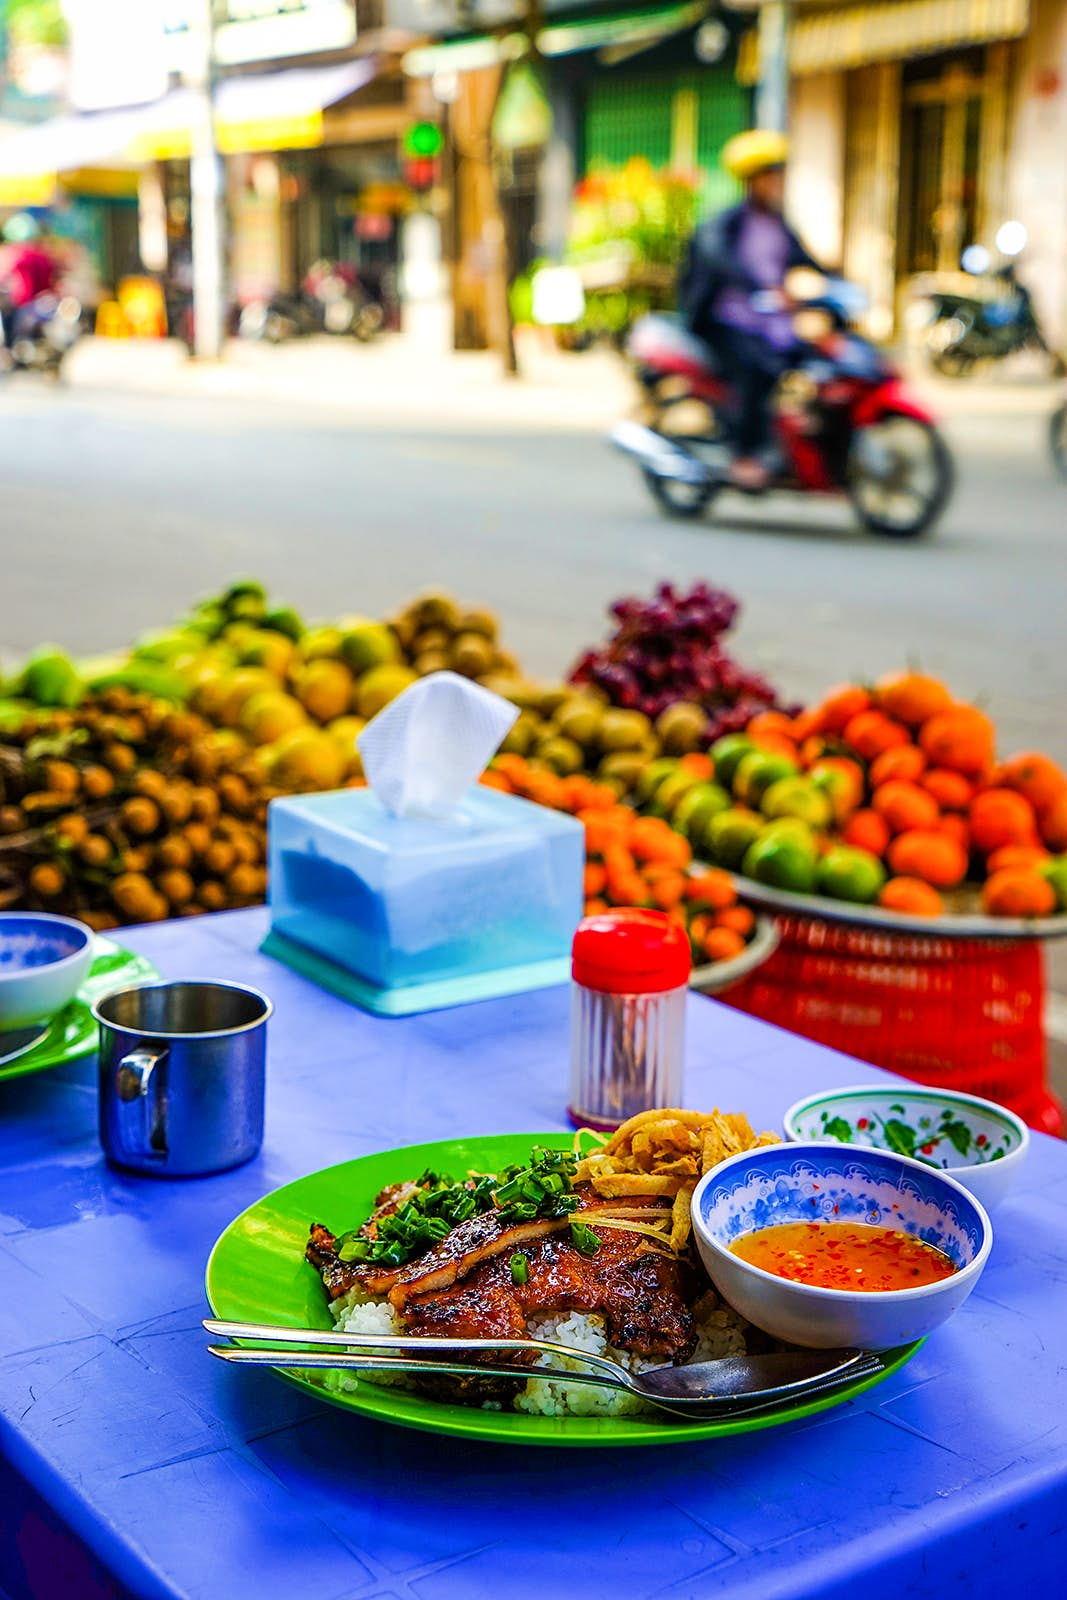 A bowl of food on a blue tablecloth in the foreground with fruit and a man on a motorbike in the background © James Pham / Lonely Planet